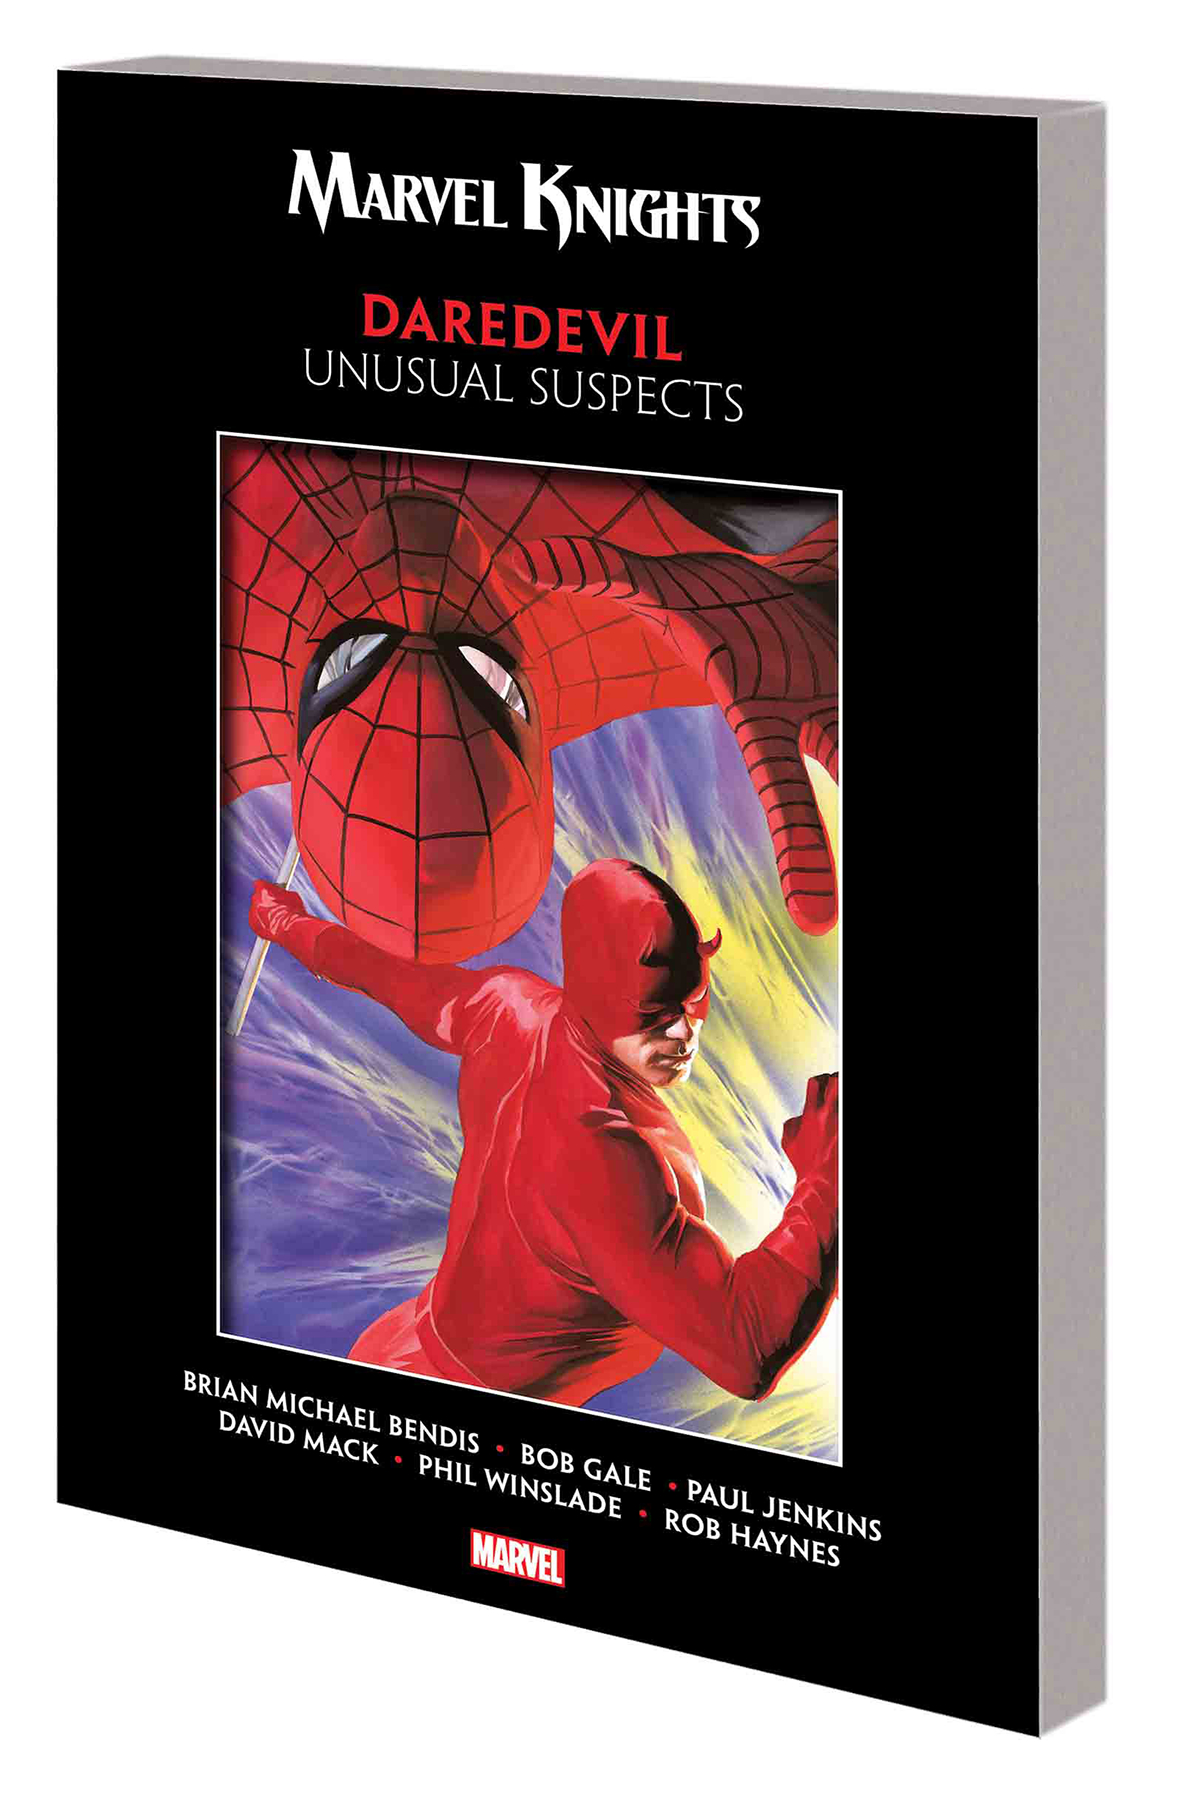 MARVEL KNIGHTS DAREDEVIL TP UNUSUAL SUSPECTS